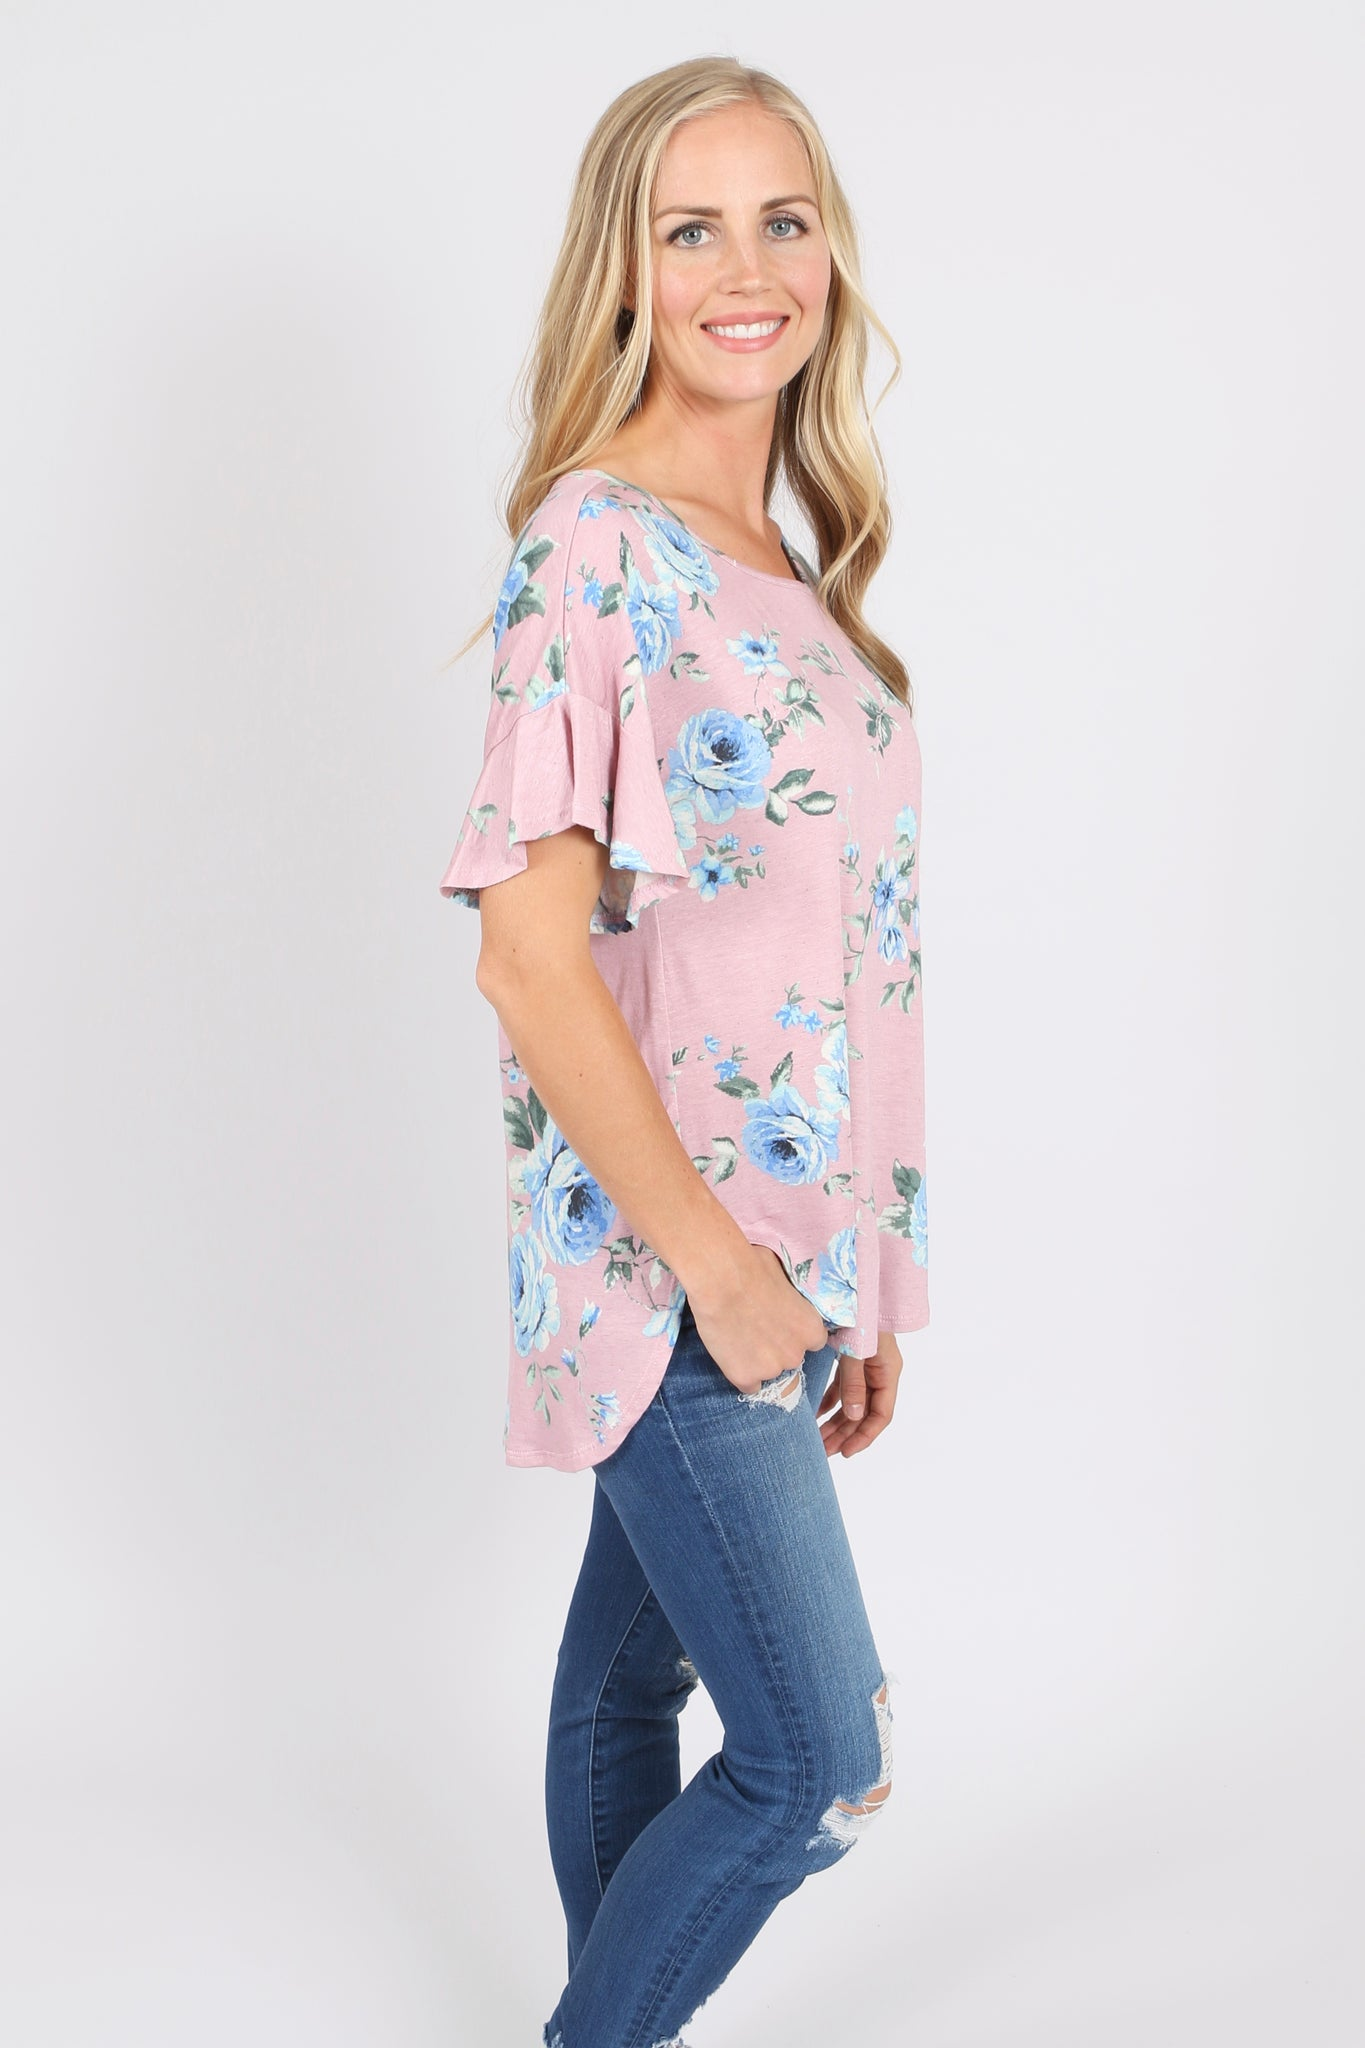 Ruffle Sleeve Top (3 Prints)